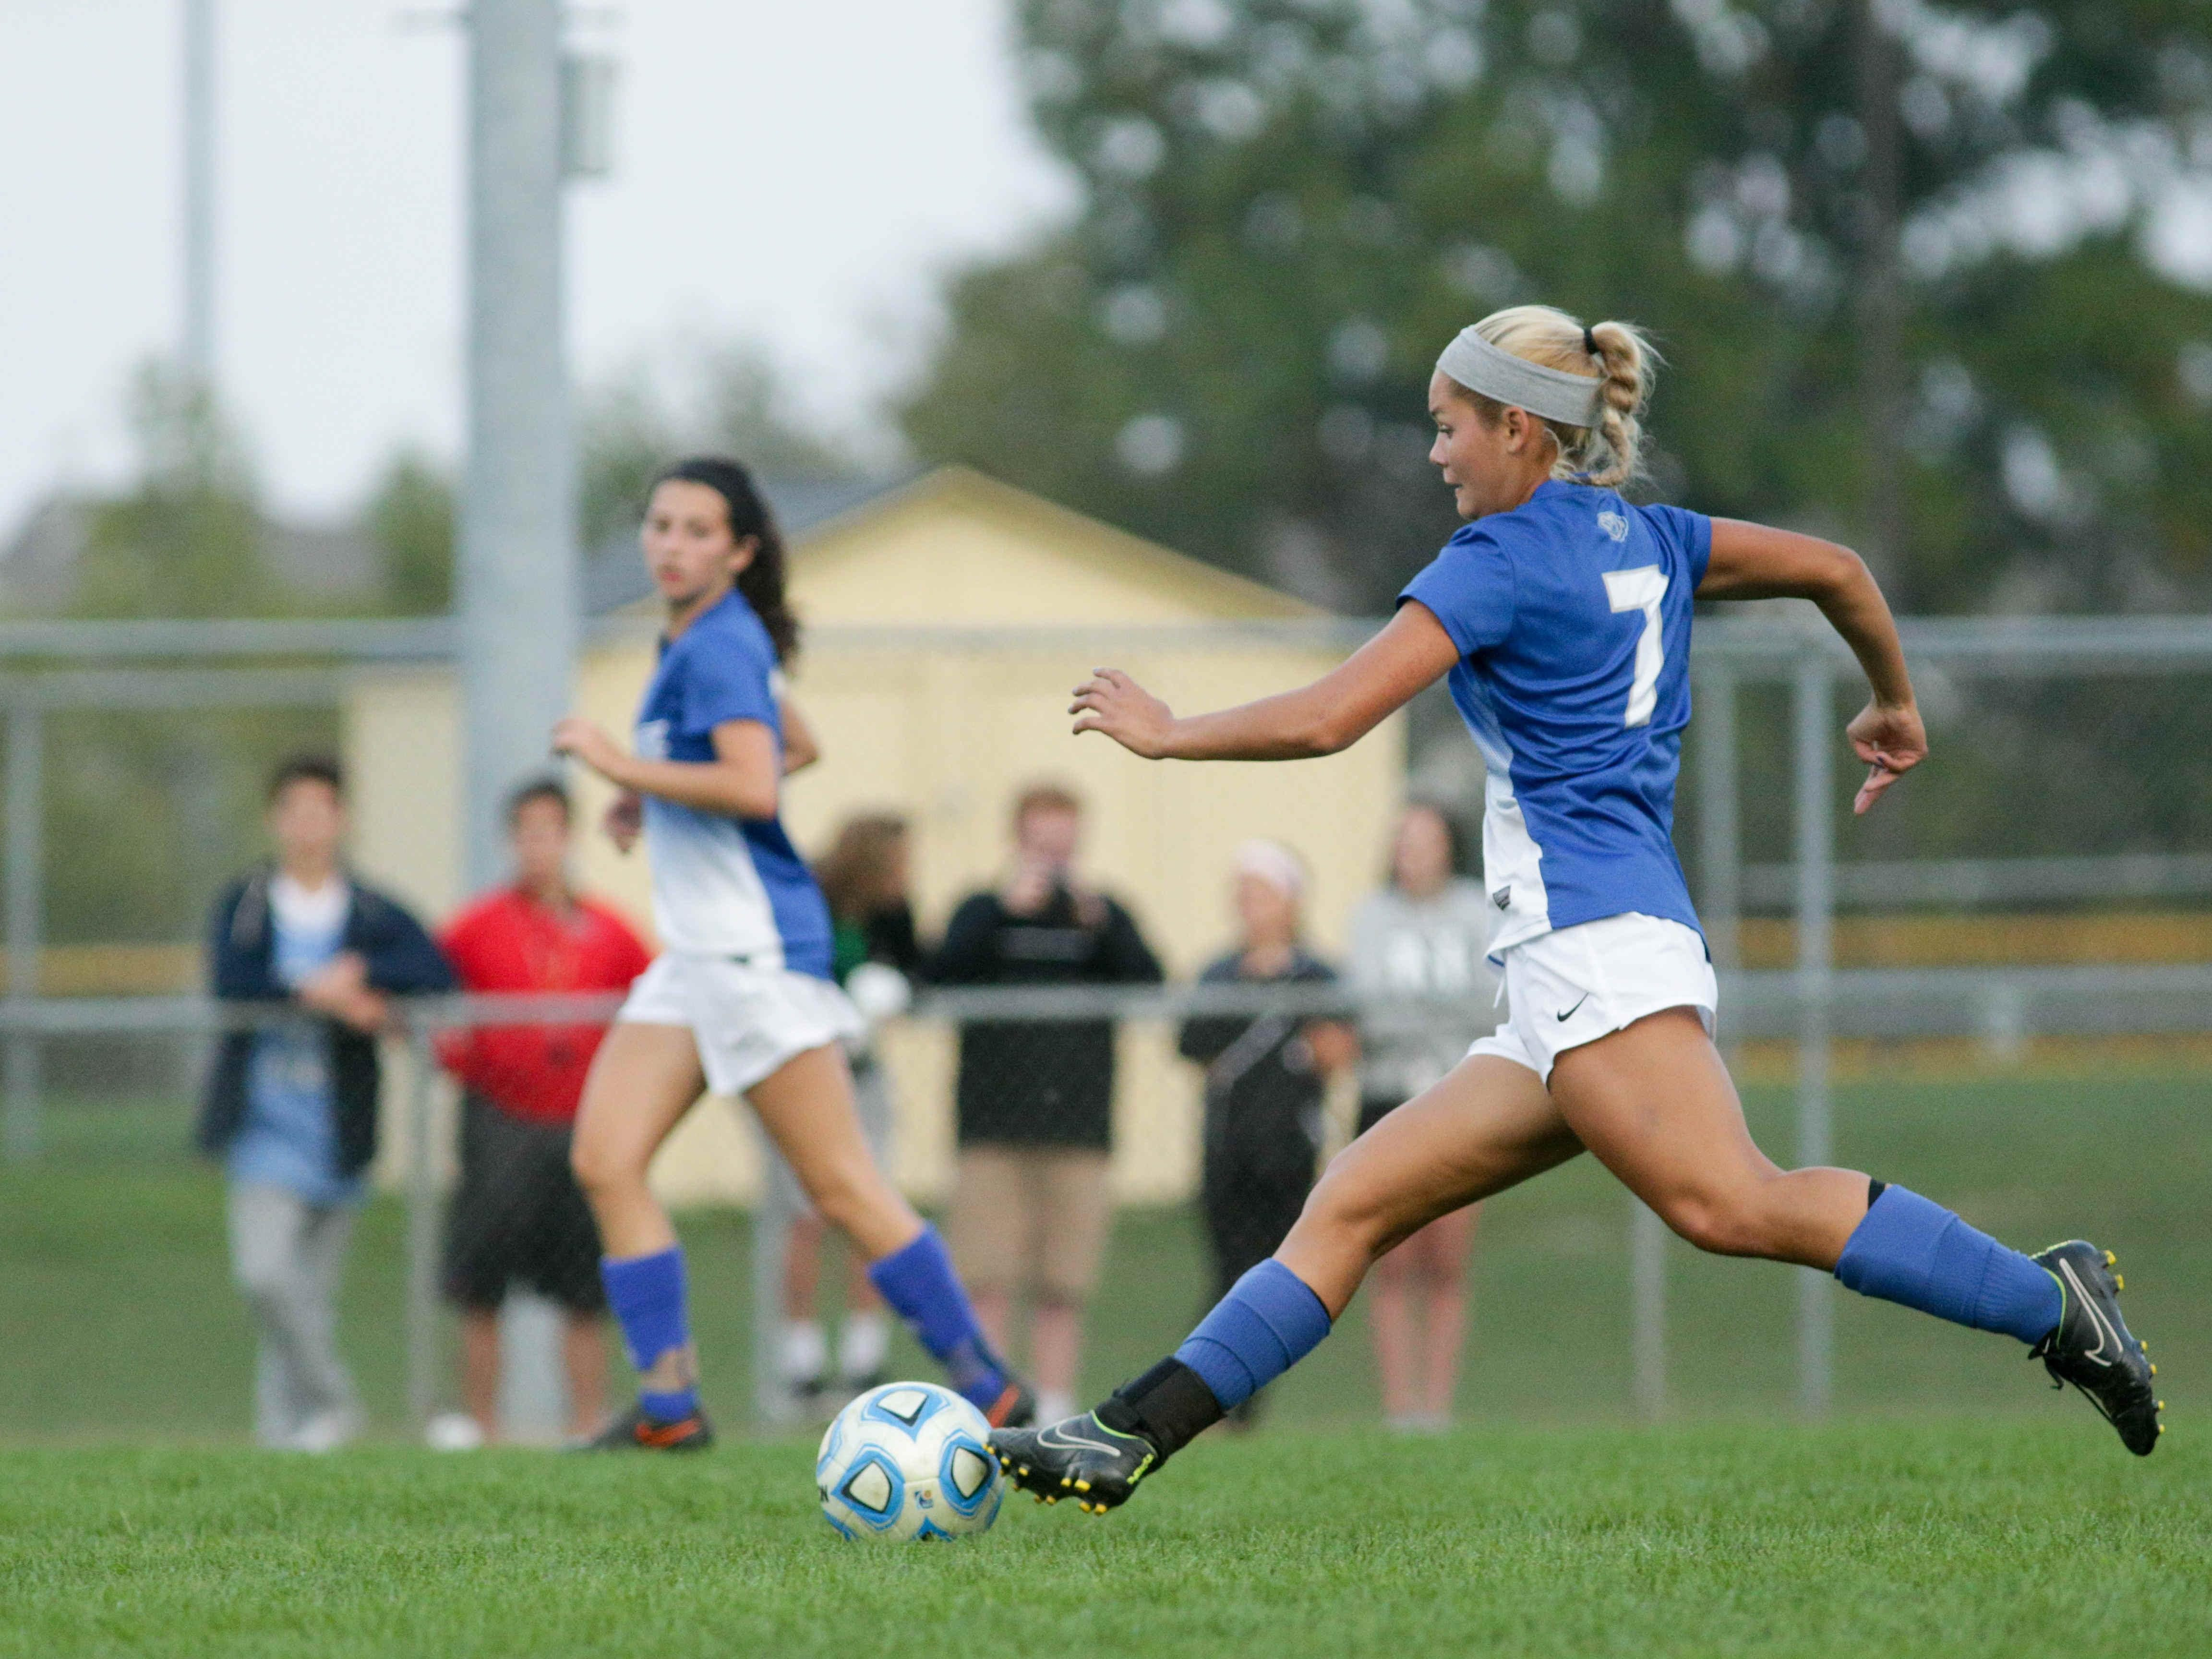 The Royals number 7, Noelle Cawston drives towards the goal, during women's sectionals, Hamilton South Eastern Royals VS the Fishers Tigers at HSE, Thursday October 8th, 2015. The Tigers took the win, 1 to 0.